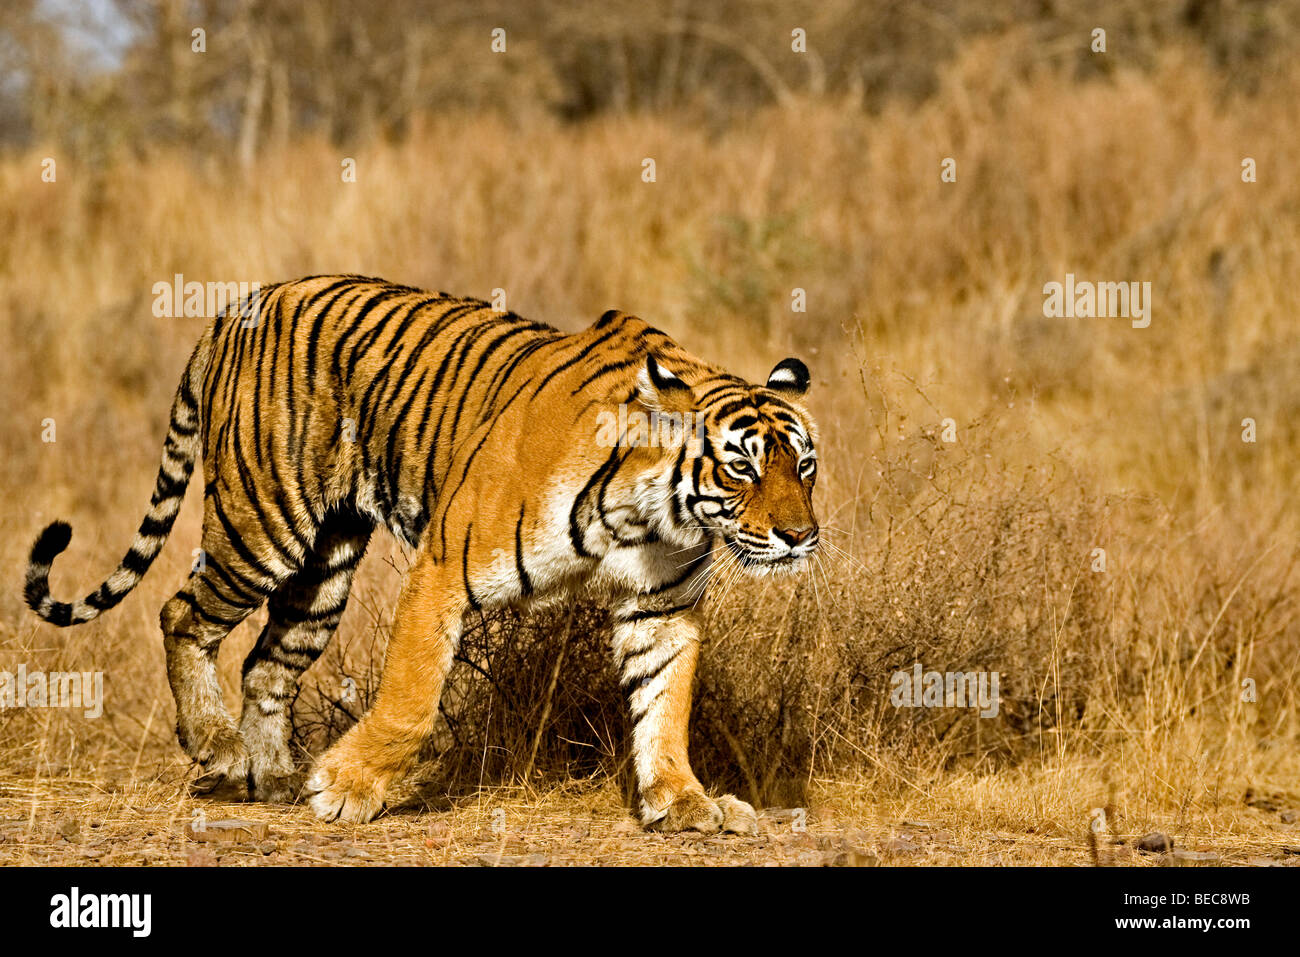 Tiger moving in Ranthambore tiger reserve - Stock Image